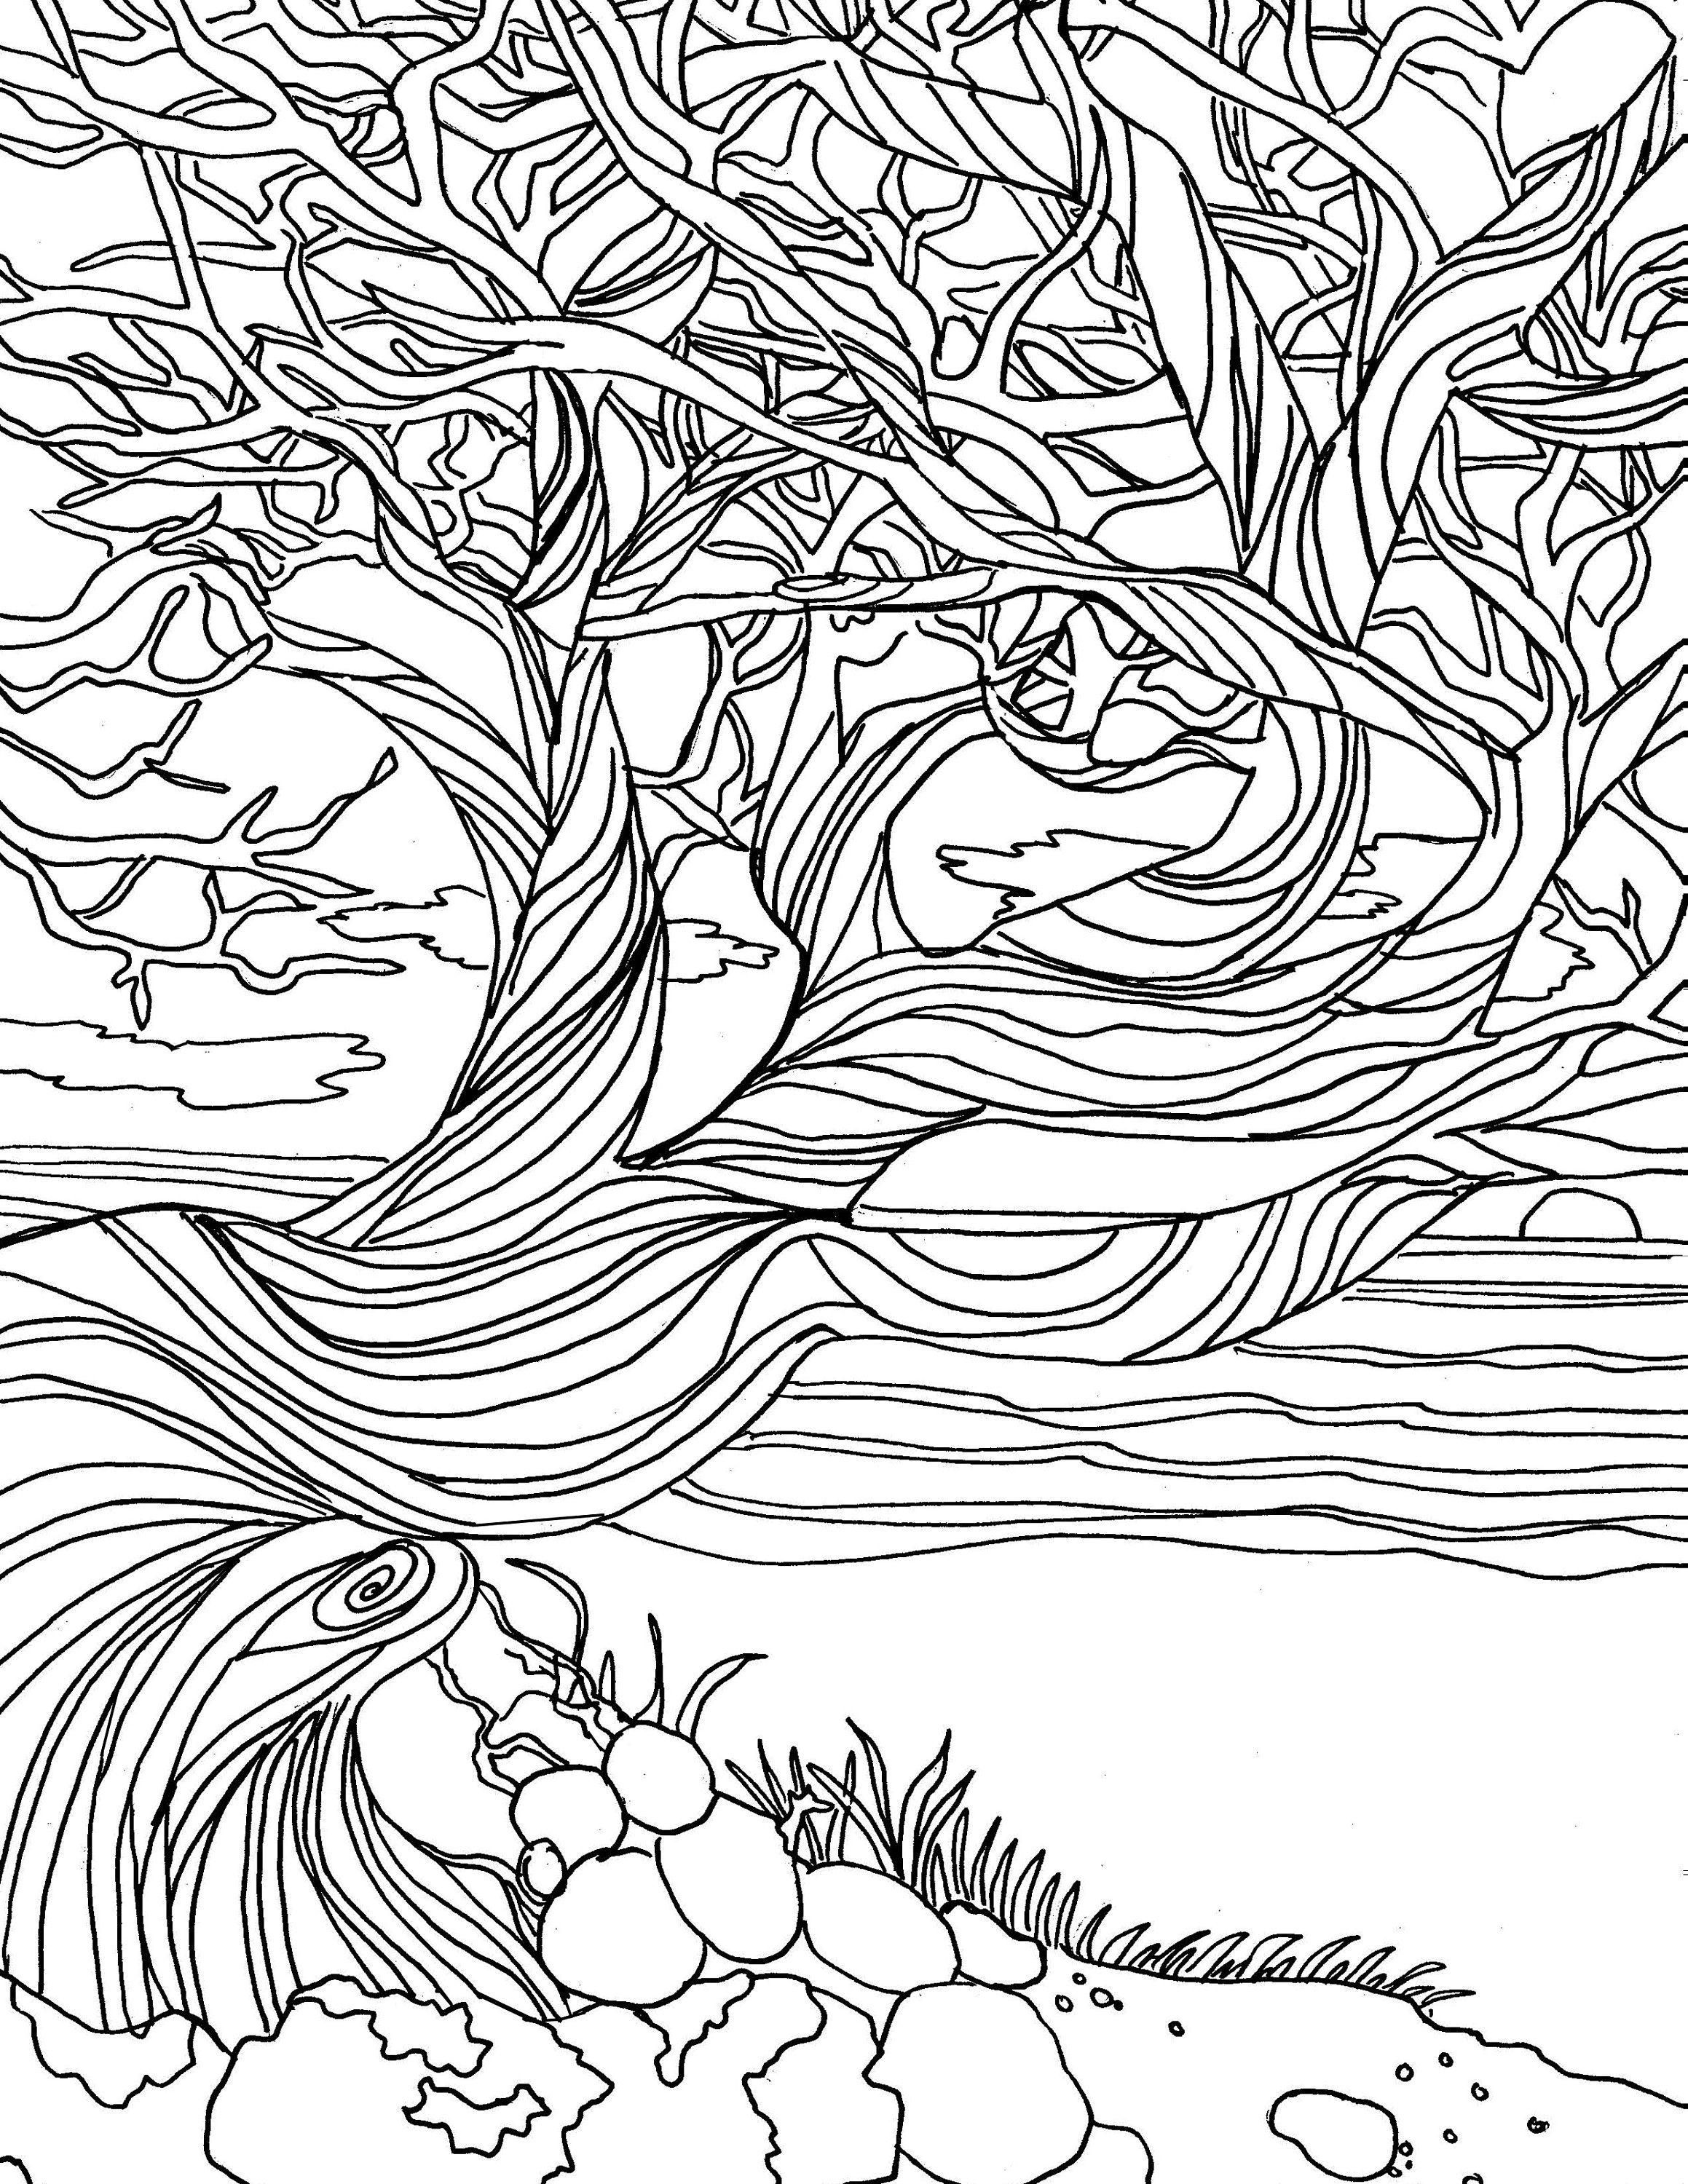 Printable Adult Coloring page coloring pages nature ...